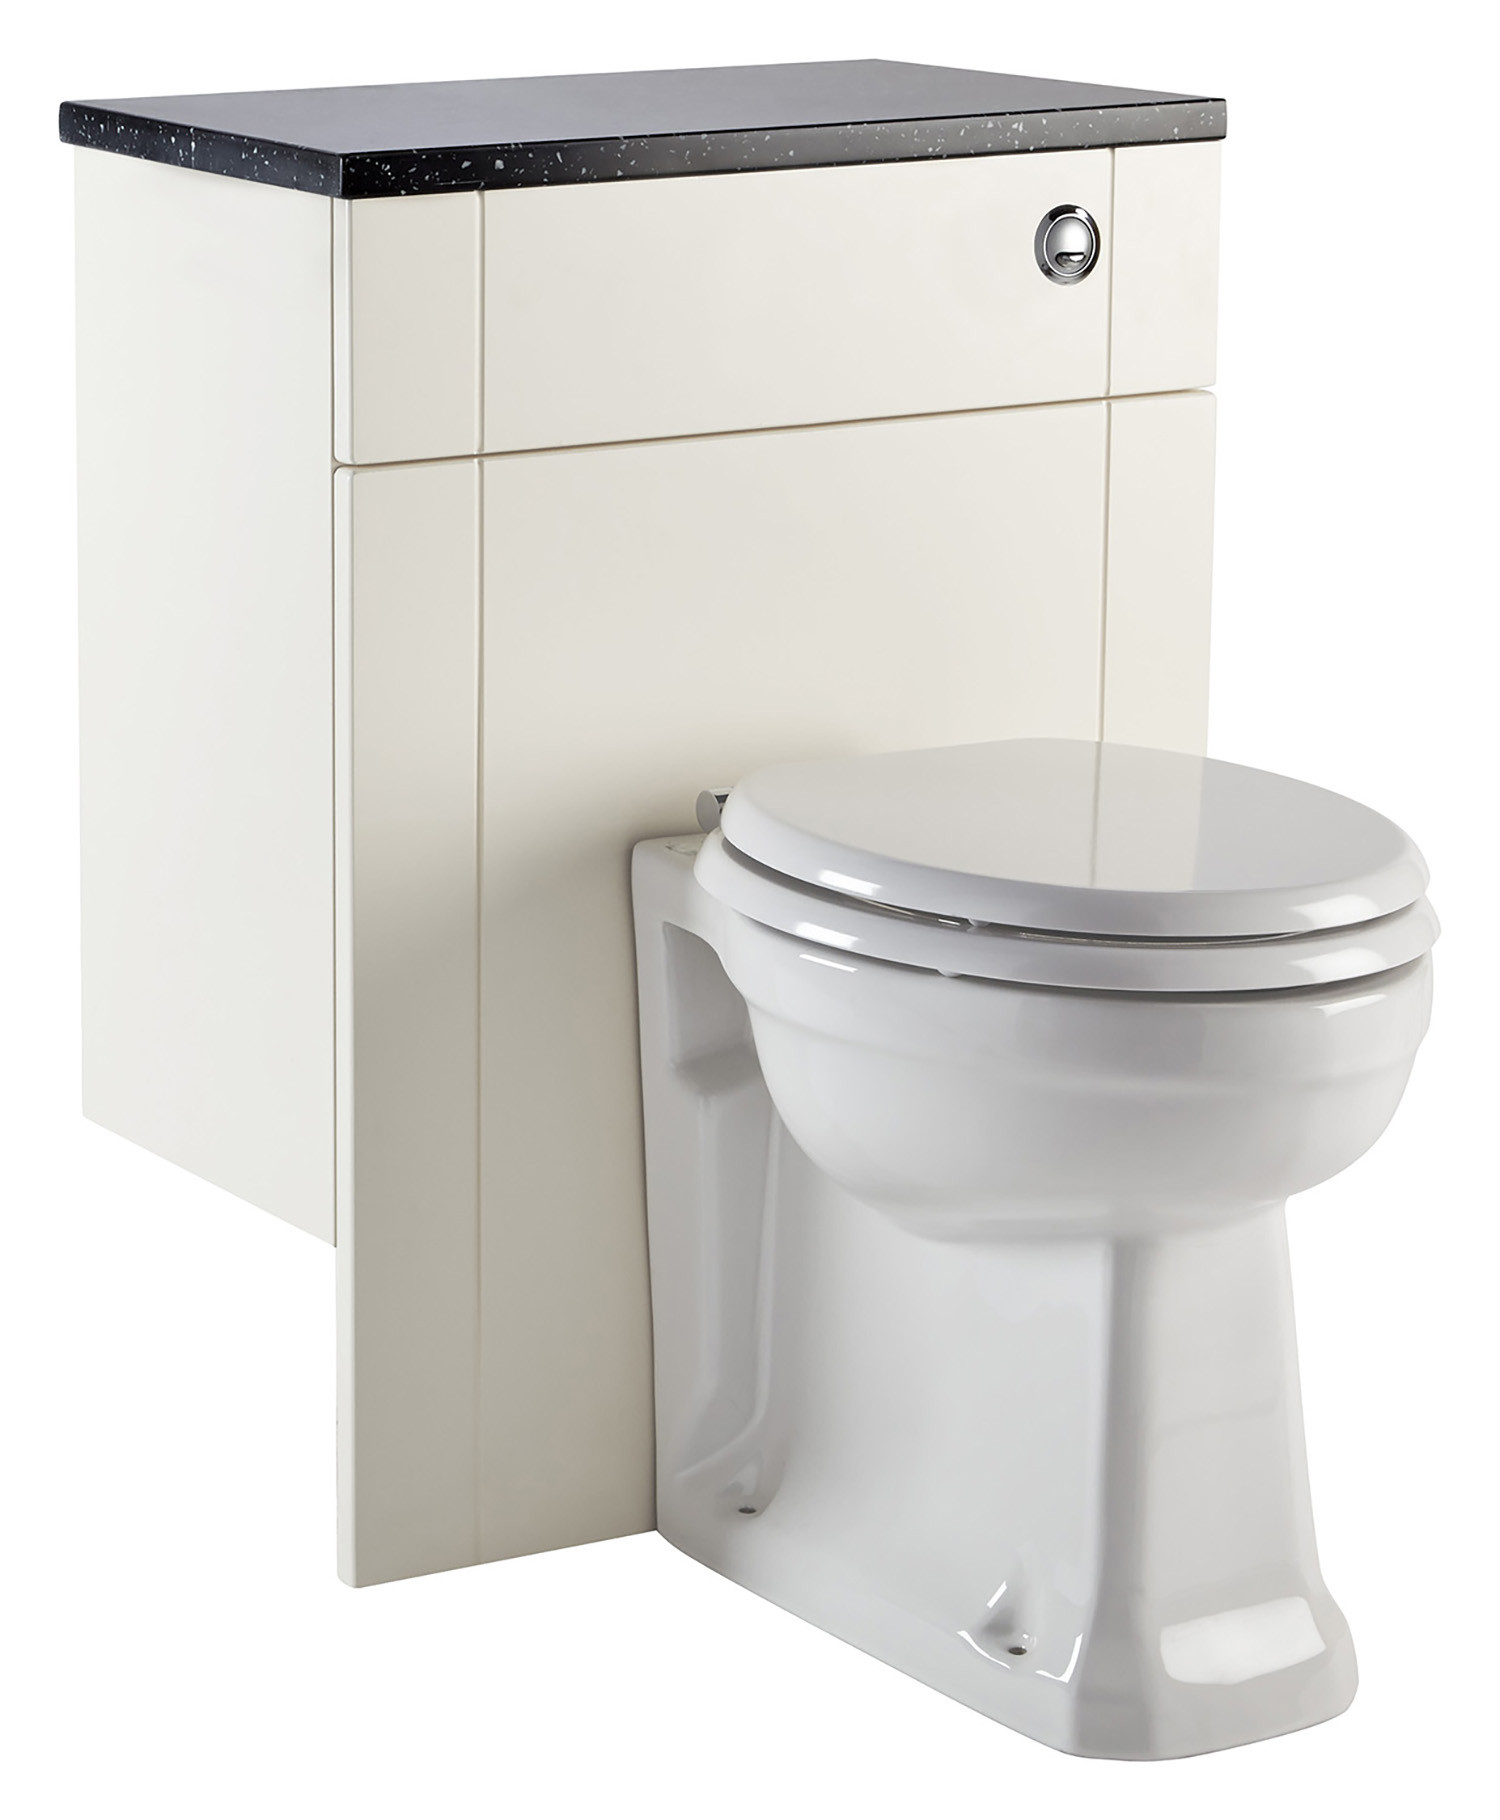 Holborn Fitted Back-To-Wall Toilet Unit - Crema